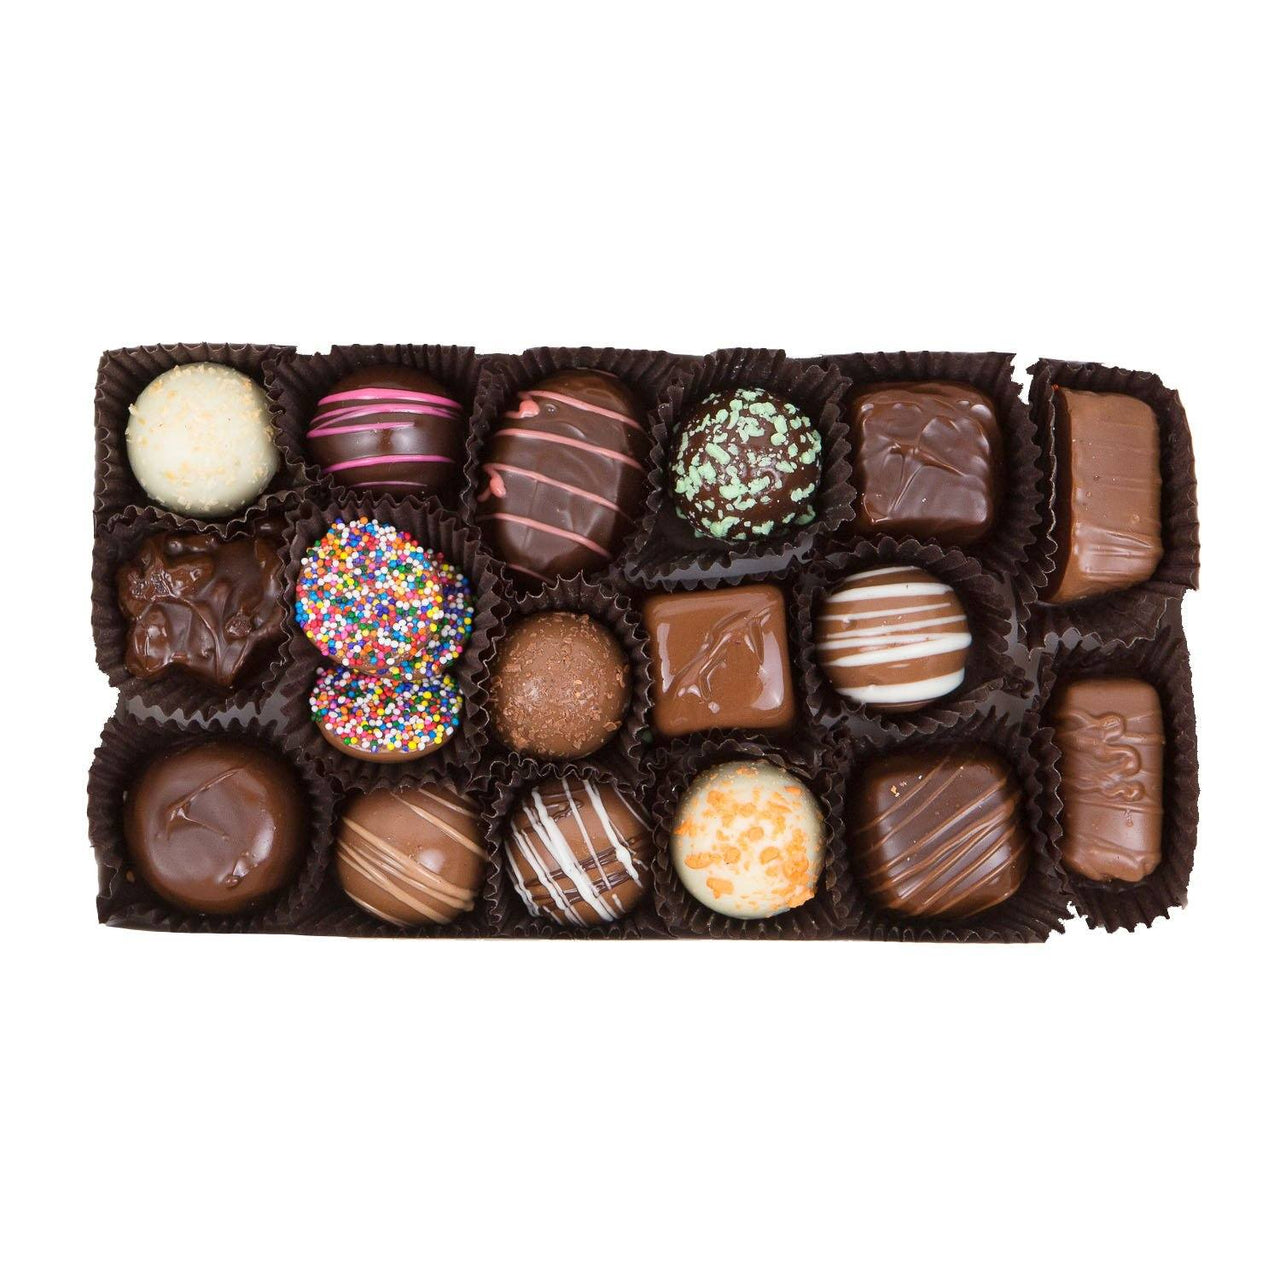 Food Gifts for Men - Assorted Chocolate Gift Box - Jackie's Chocolate (1487134523427)